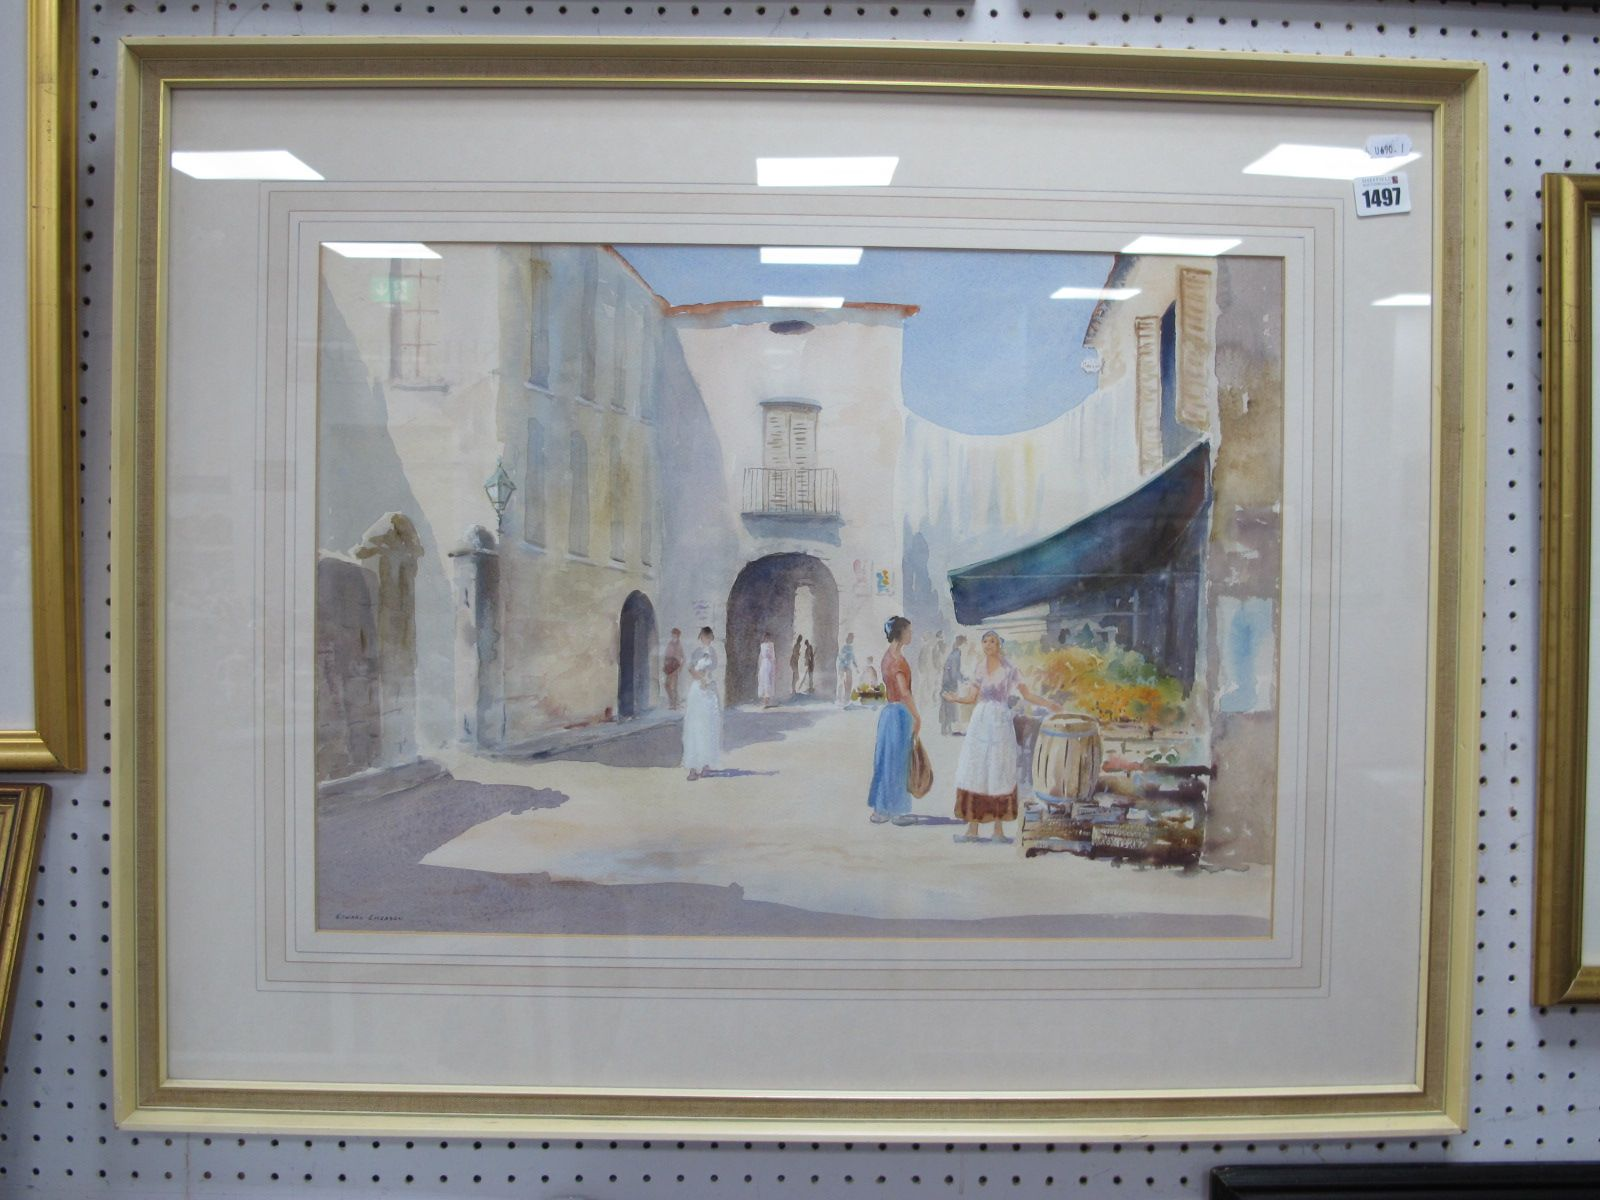 Edward Emerson, Continental Market Stall Scene, Watercolour, 38 x 53cm, signed lower left.